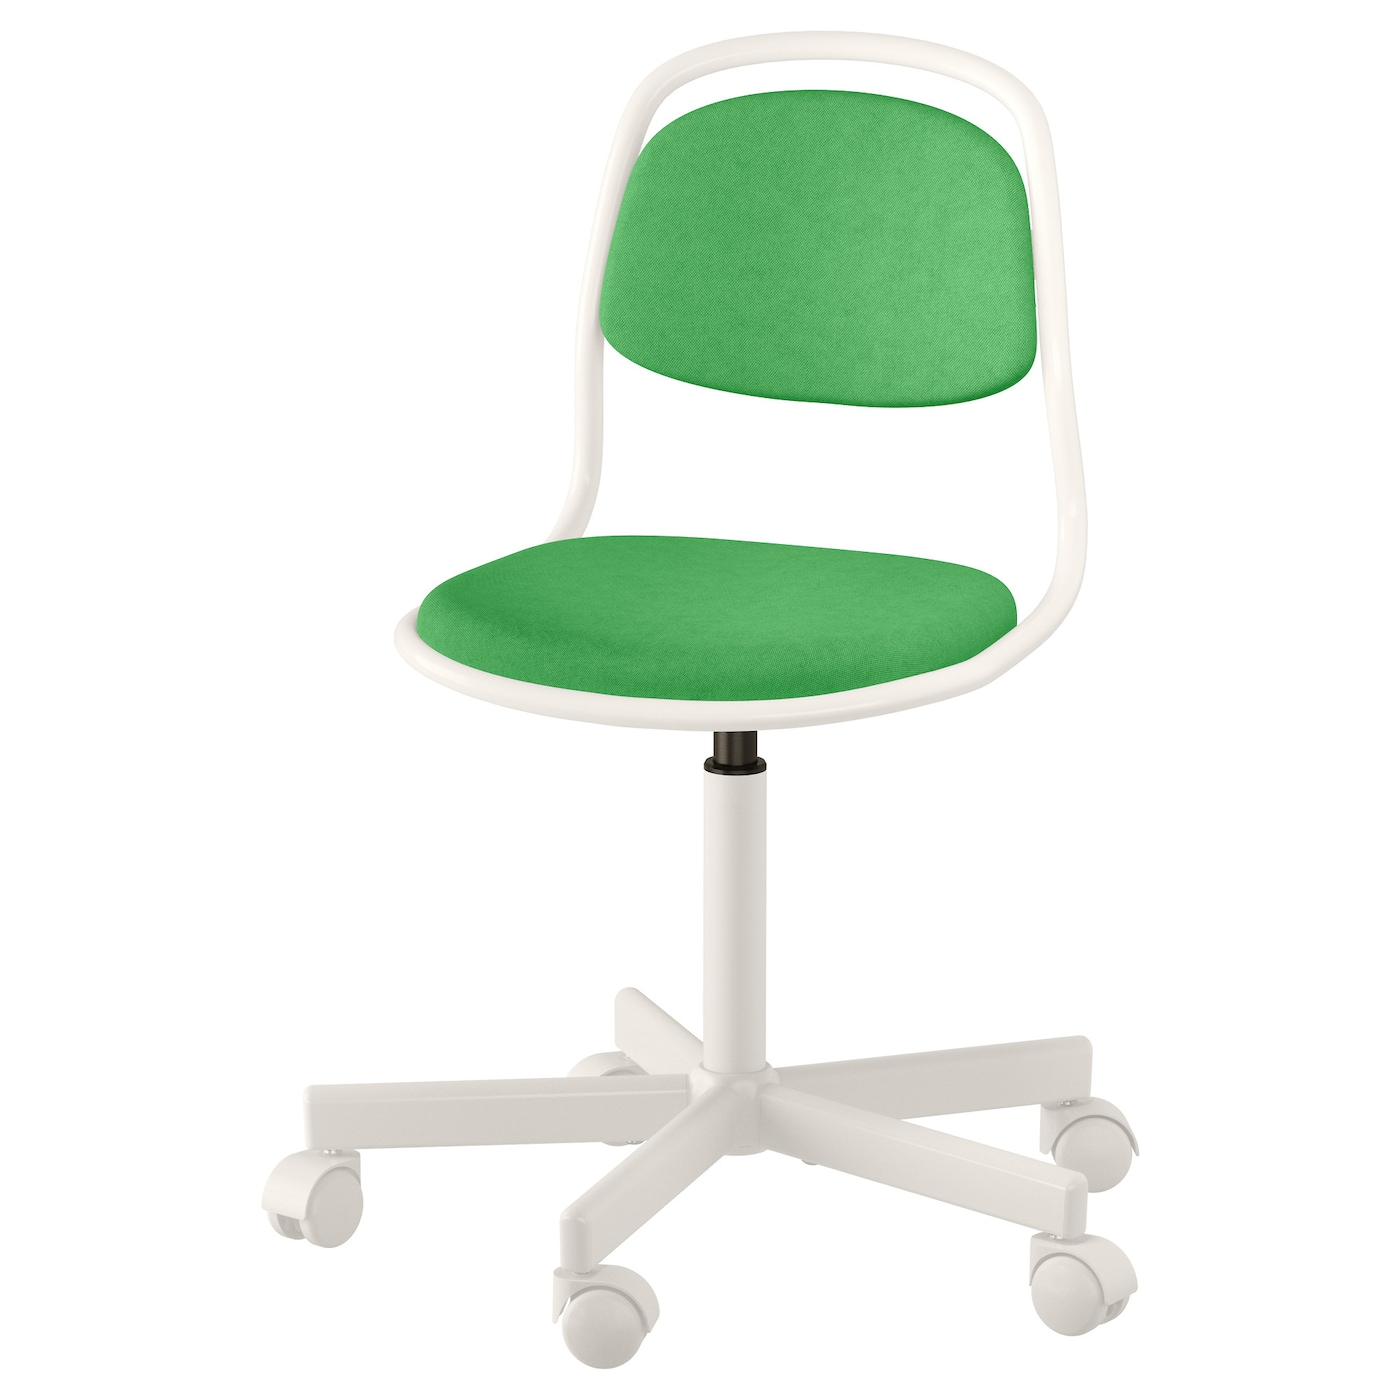 IKEA RFJLL children's desk chair You sit comfortably since the chair is  adjustable in height.